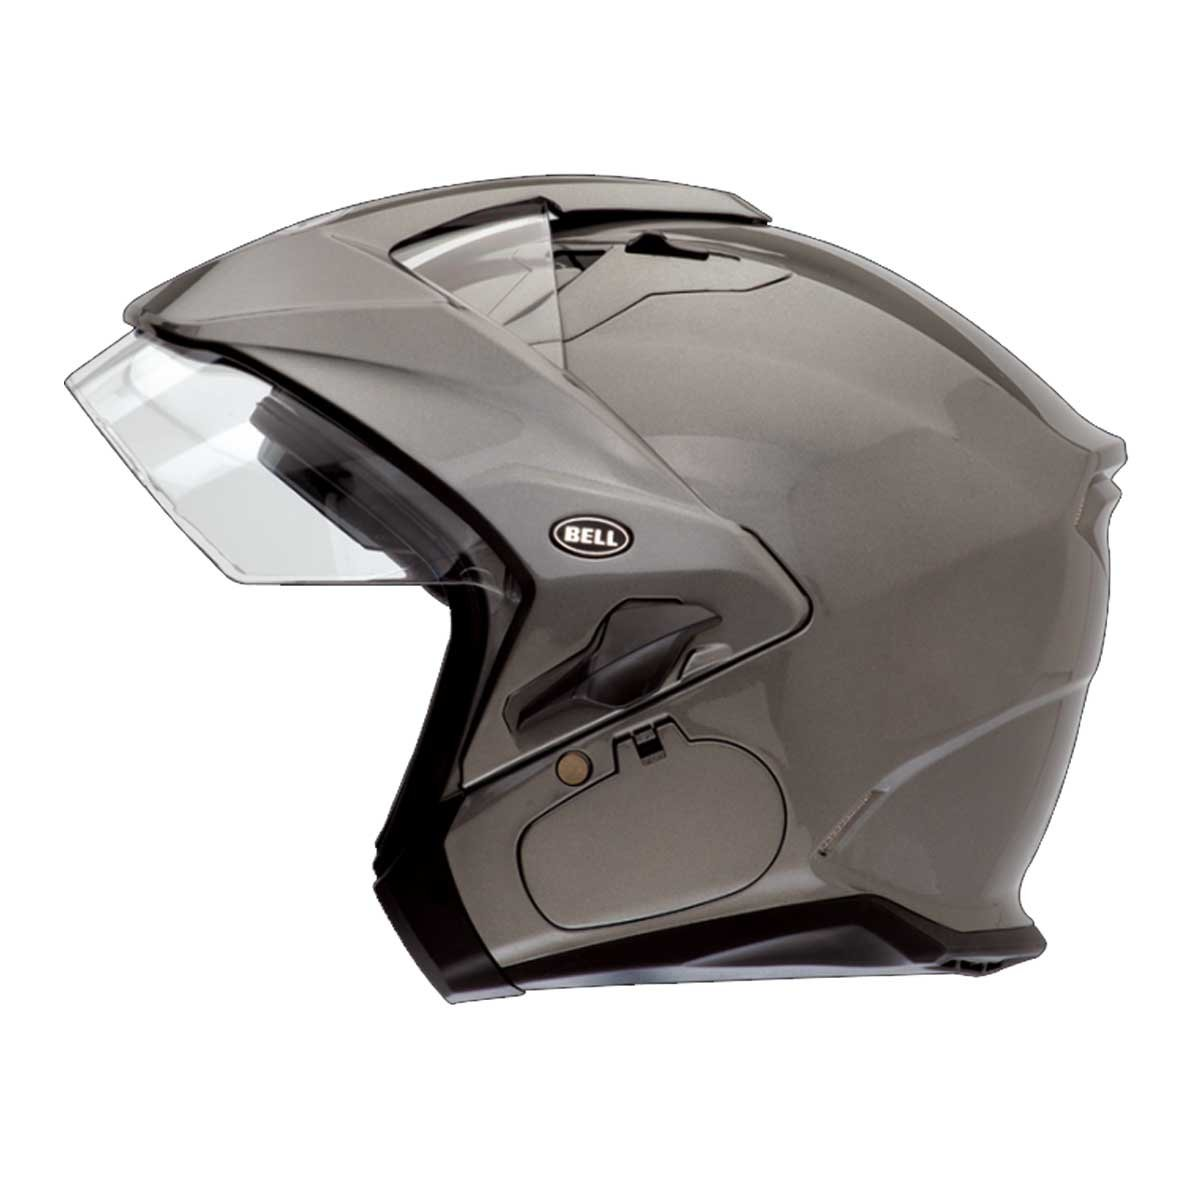 Amazon.com: Titanium Sz XL Bell Helmets Mag-9 Sena Open Face Helmet: Automotive